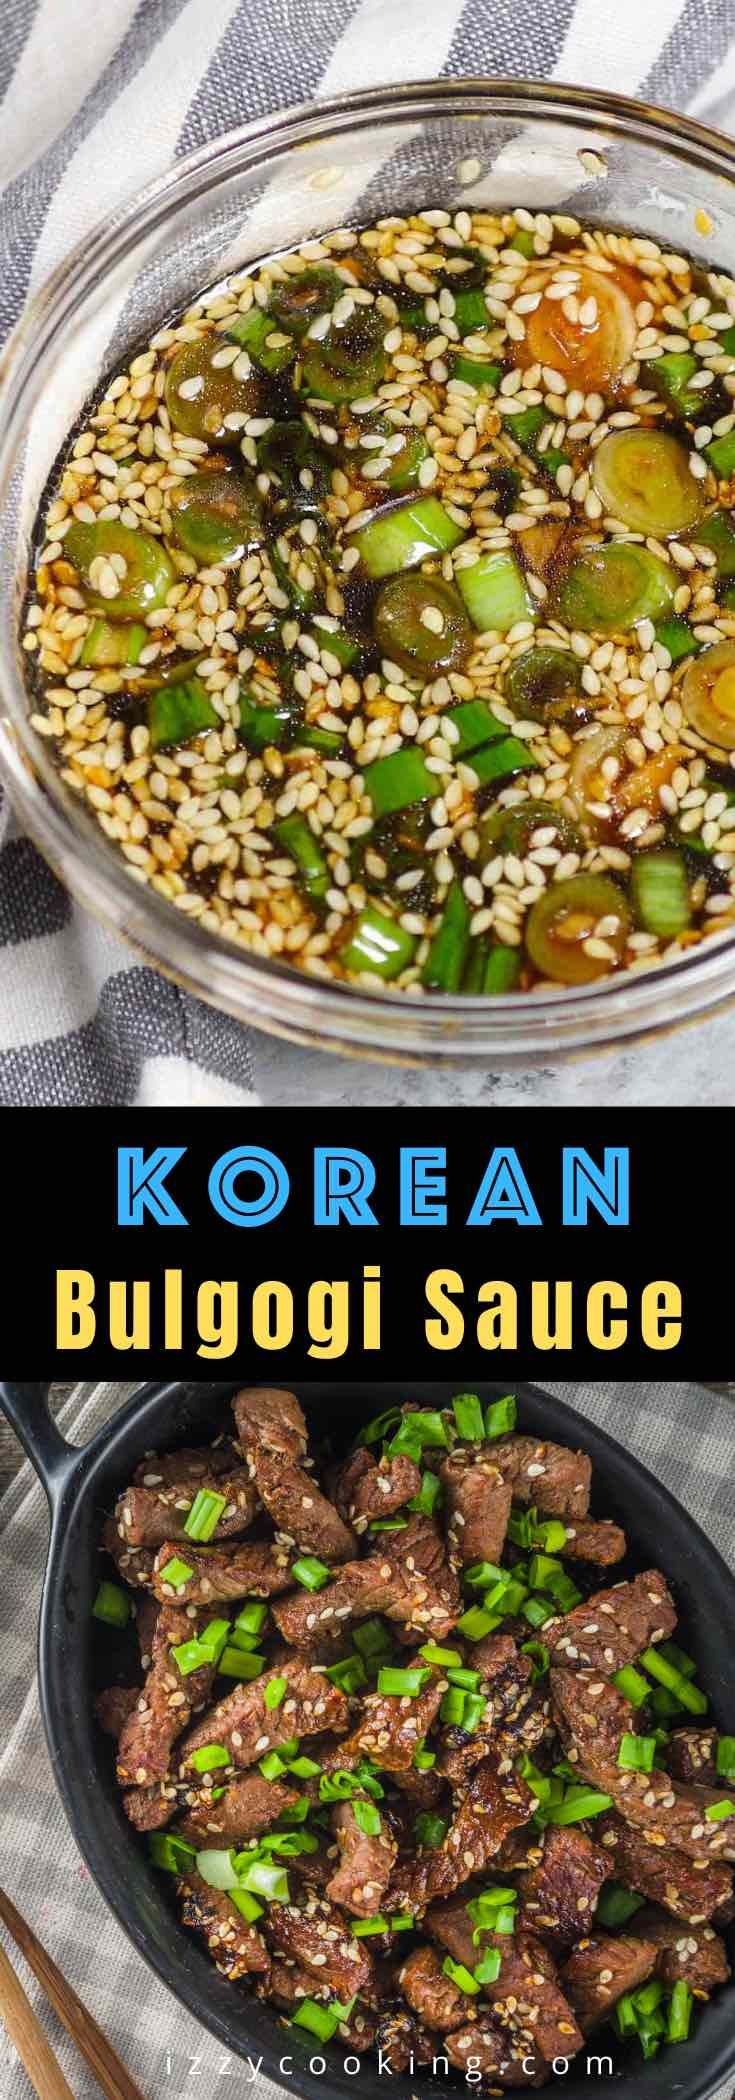 Bulgogi Sauce is sweet and savory with hints of pear, ginger, and garlic. It's a staple ingredient in Korean BBQ Beef. This easy recipe is made from scratch and adds great flavors to your grilled beef. You can also use it in the marinade, dipping sauce, burgers, stir-fry chicken, or pork served with rice or noodles.